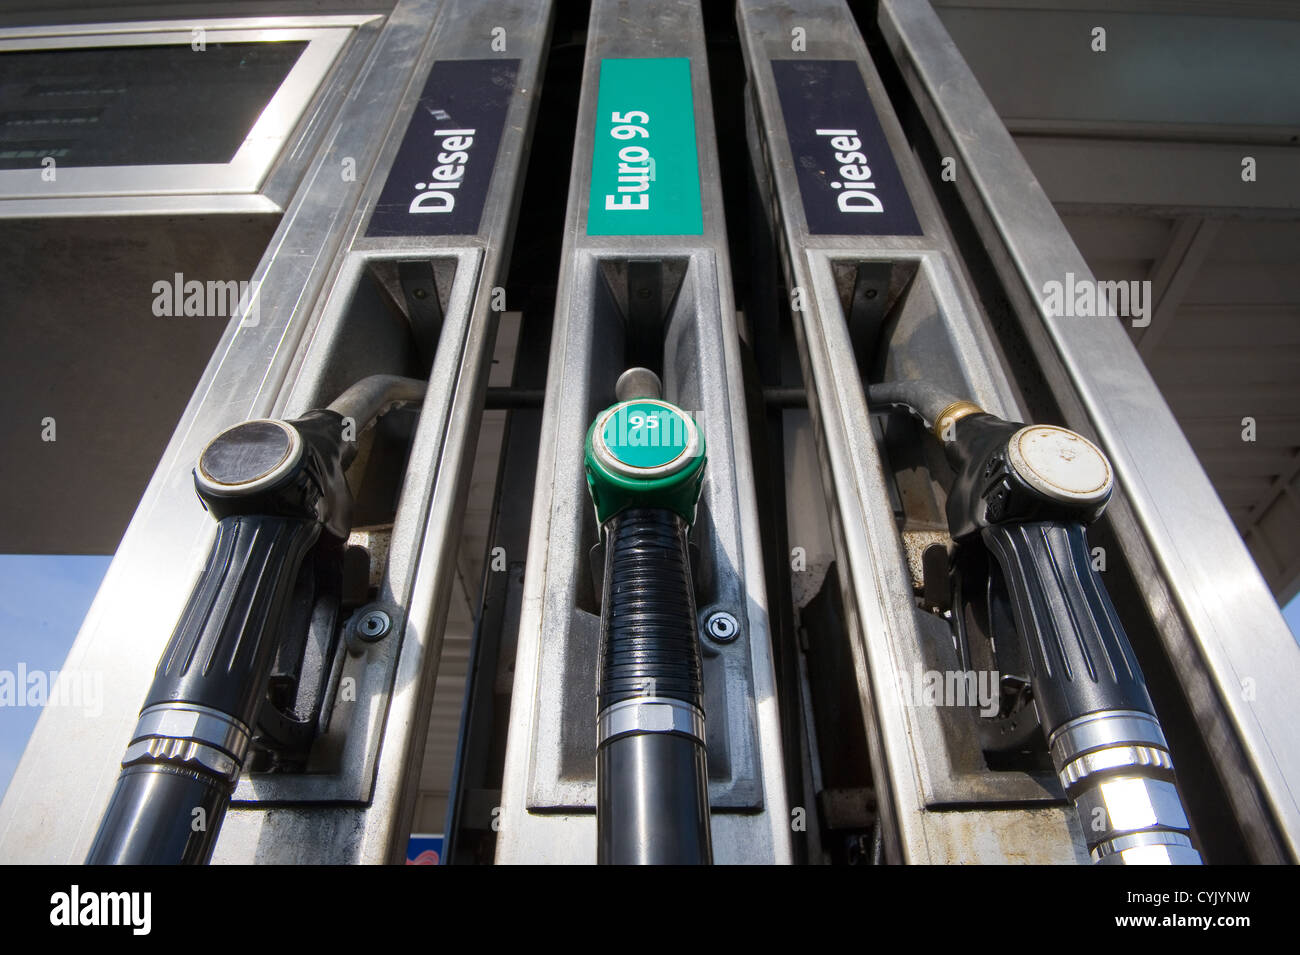 Three fuel nozzles at a gas station - Stock Image